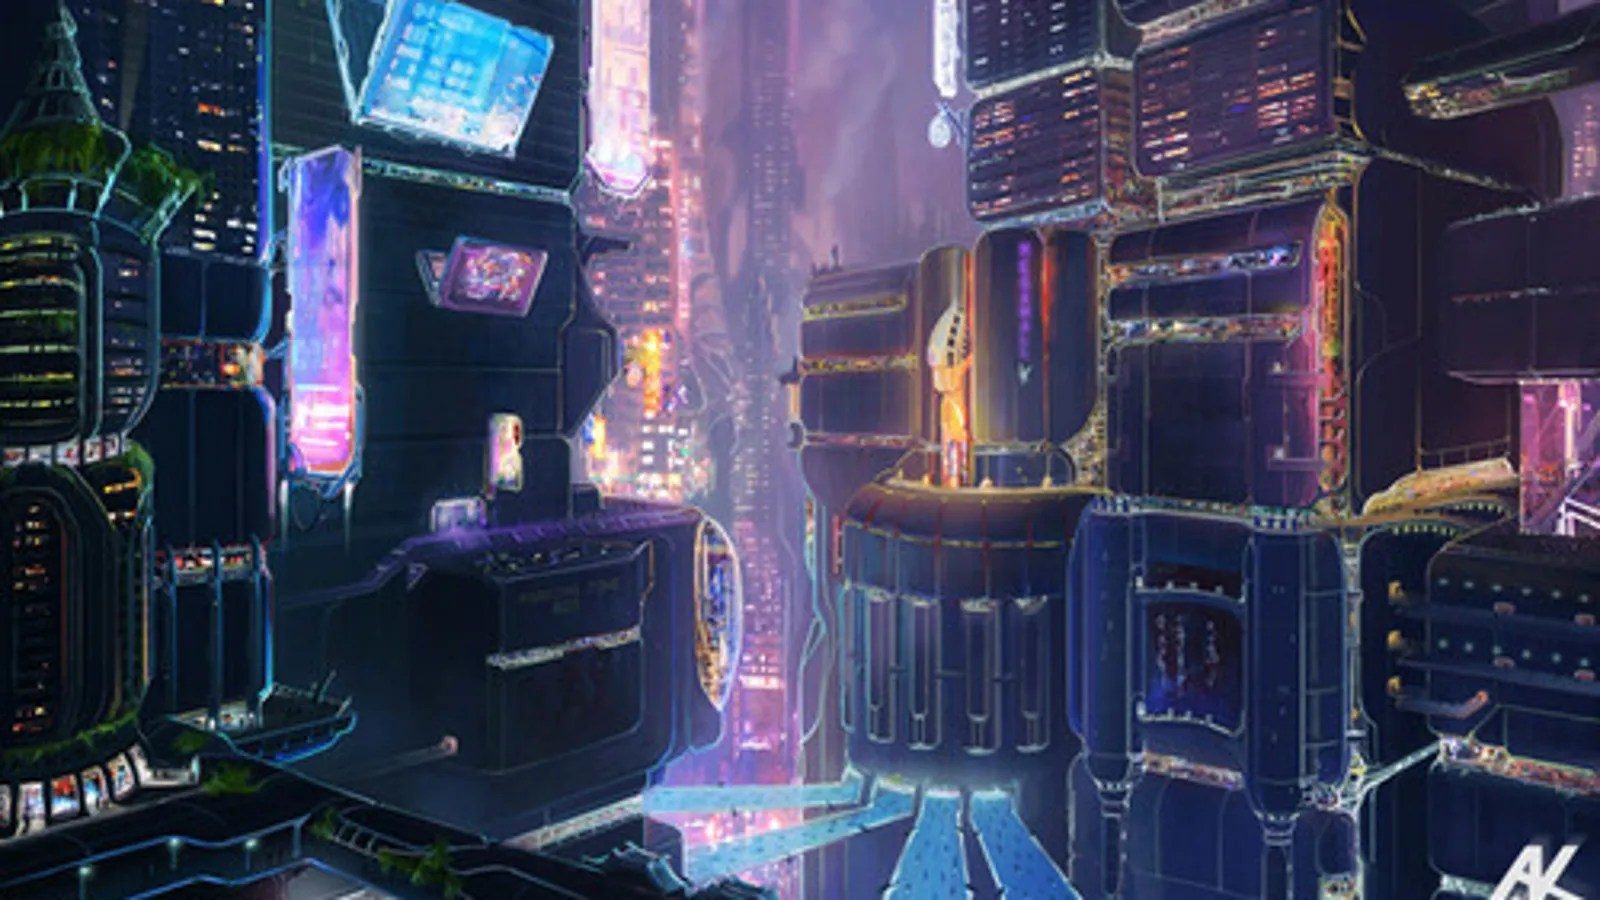 Transformers Fall Of Cybertron Wallpaper Travel Back To Neo Seoul With More Quot Cloud Atlas Quot Concept Art